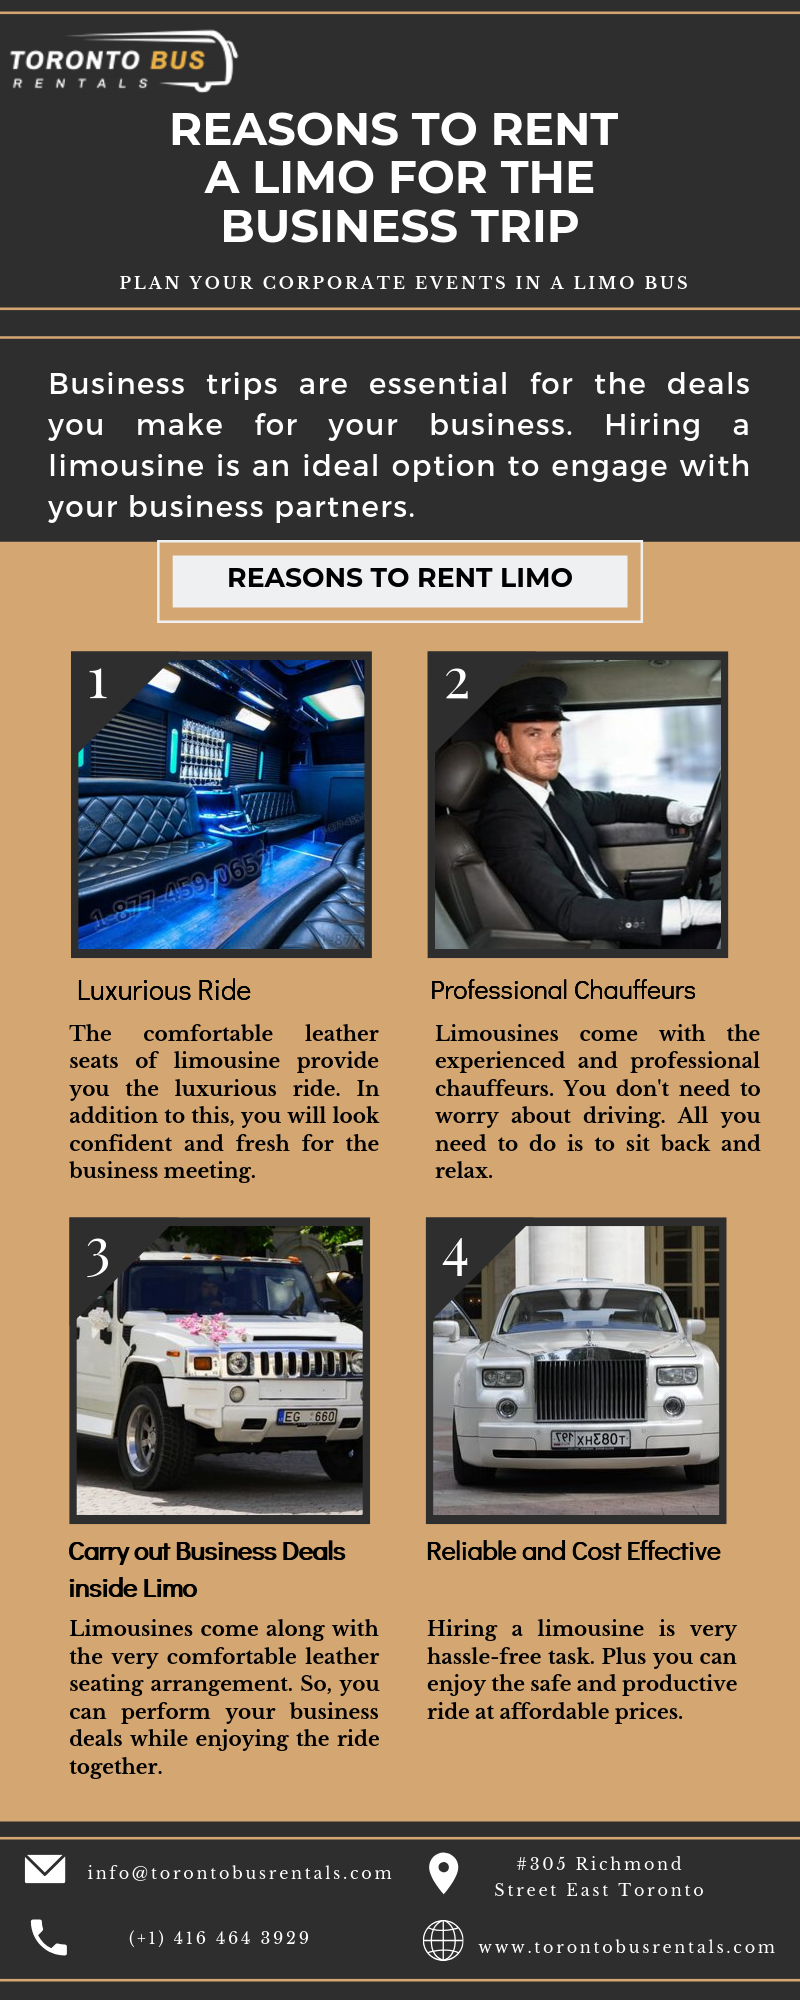 Reasons to rent a limo for the Business Trip